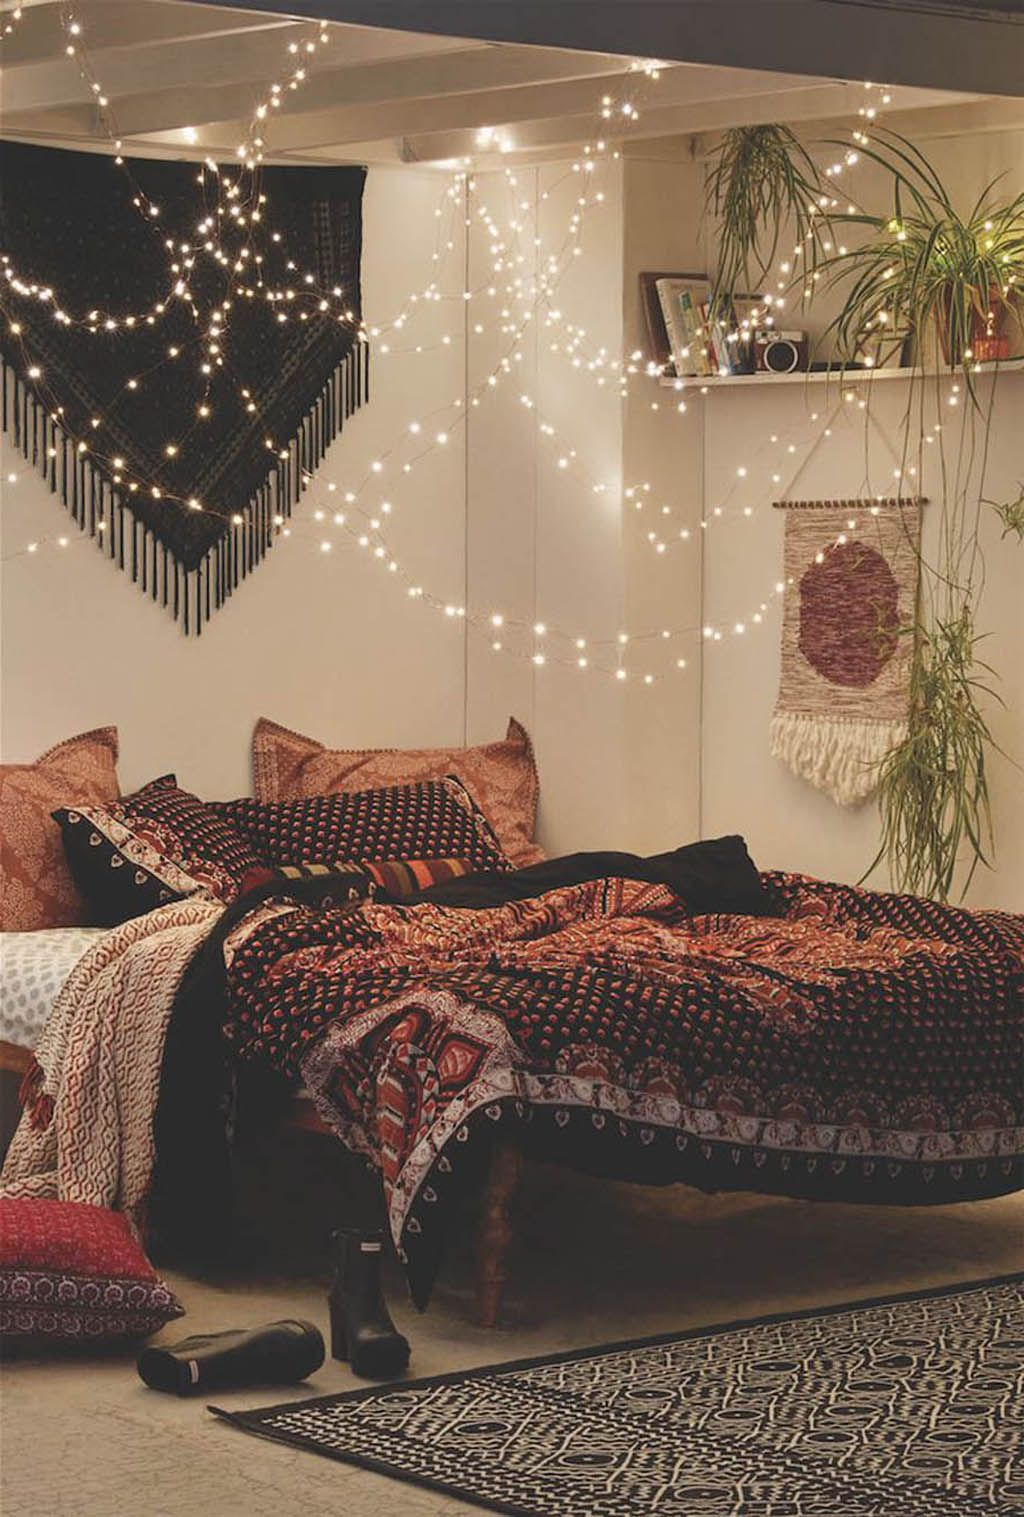 Awesome string light ideas for bedroom 53